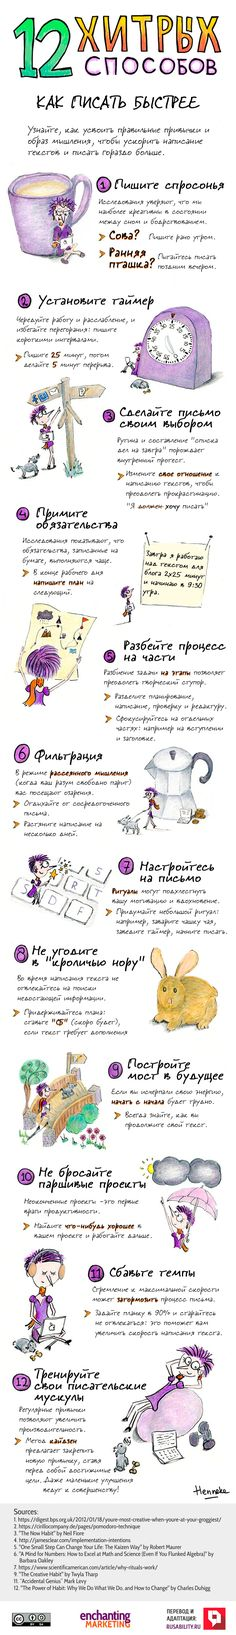 infographic-how-to-write-faster_RUS-1.jpg (630×4367)